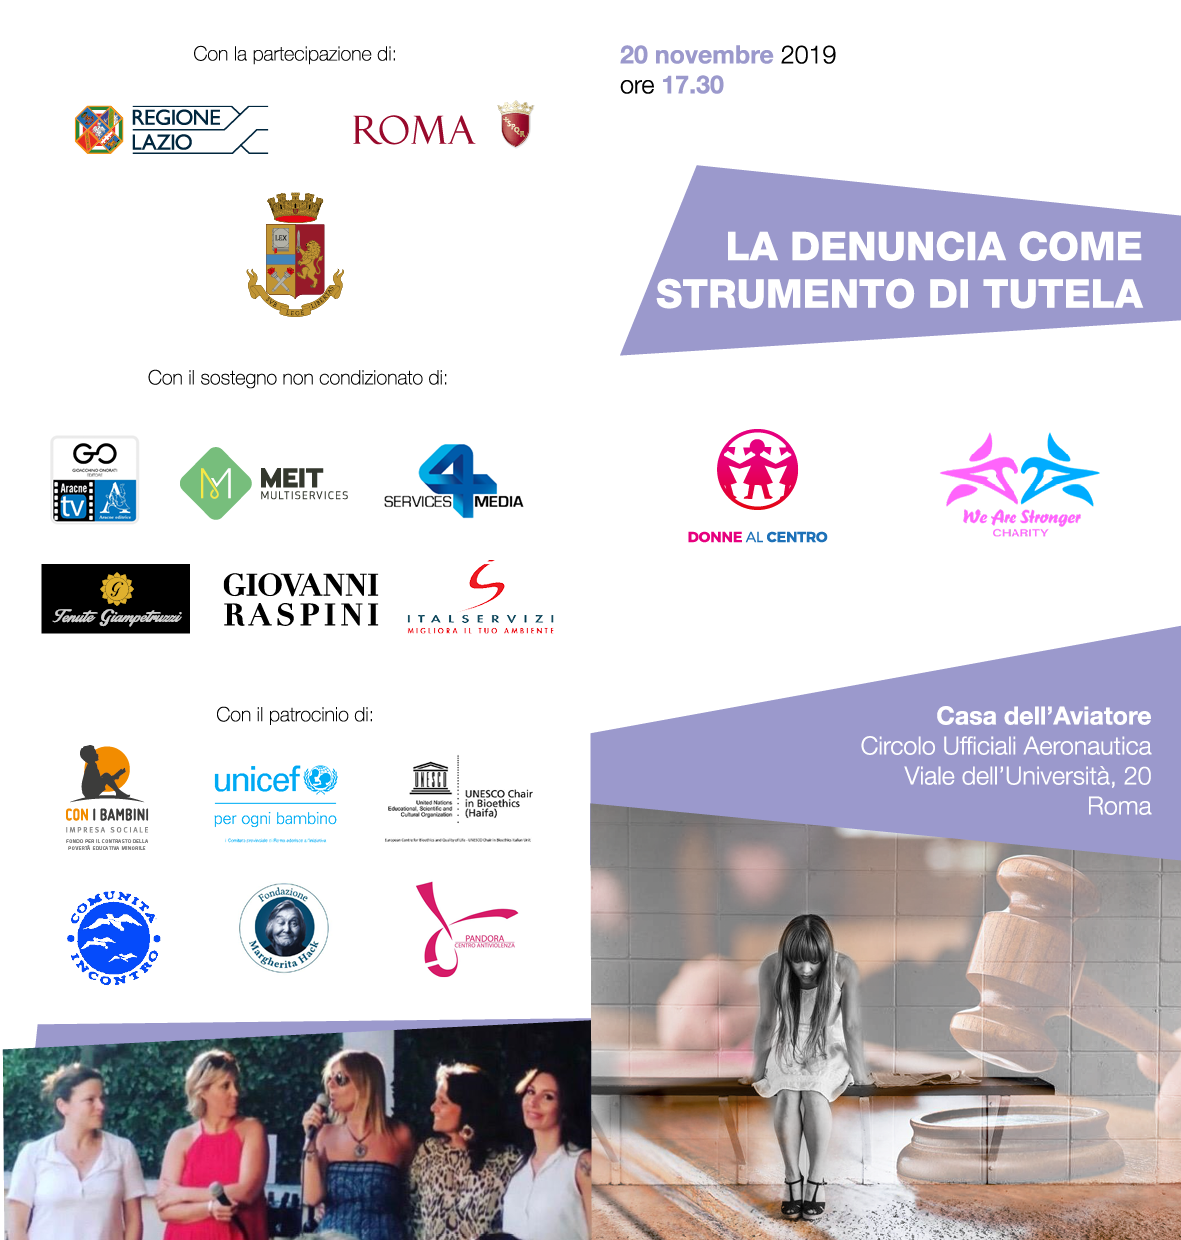 https://static.wearestrongercharity.org/images/events/20191120-convegno.png